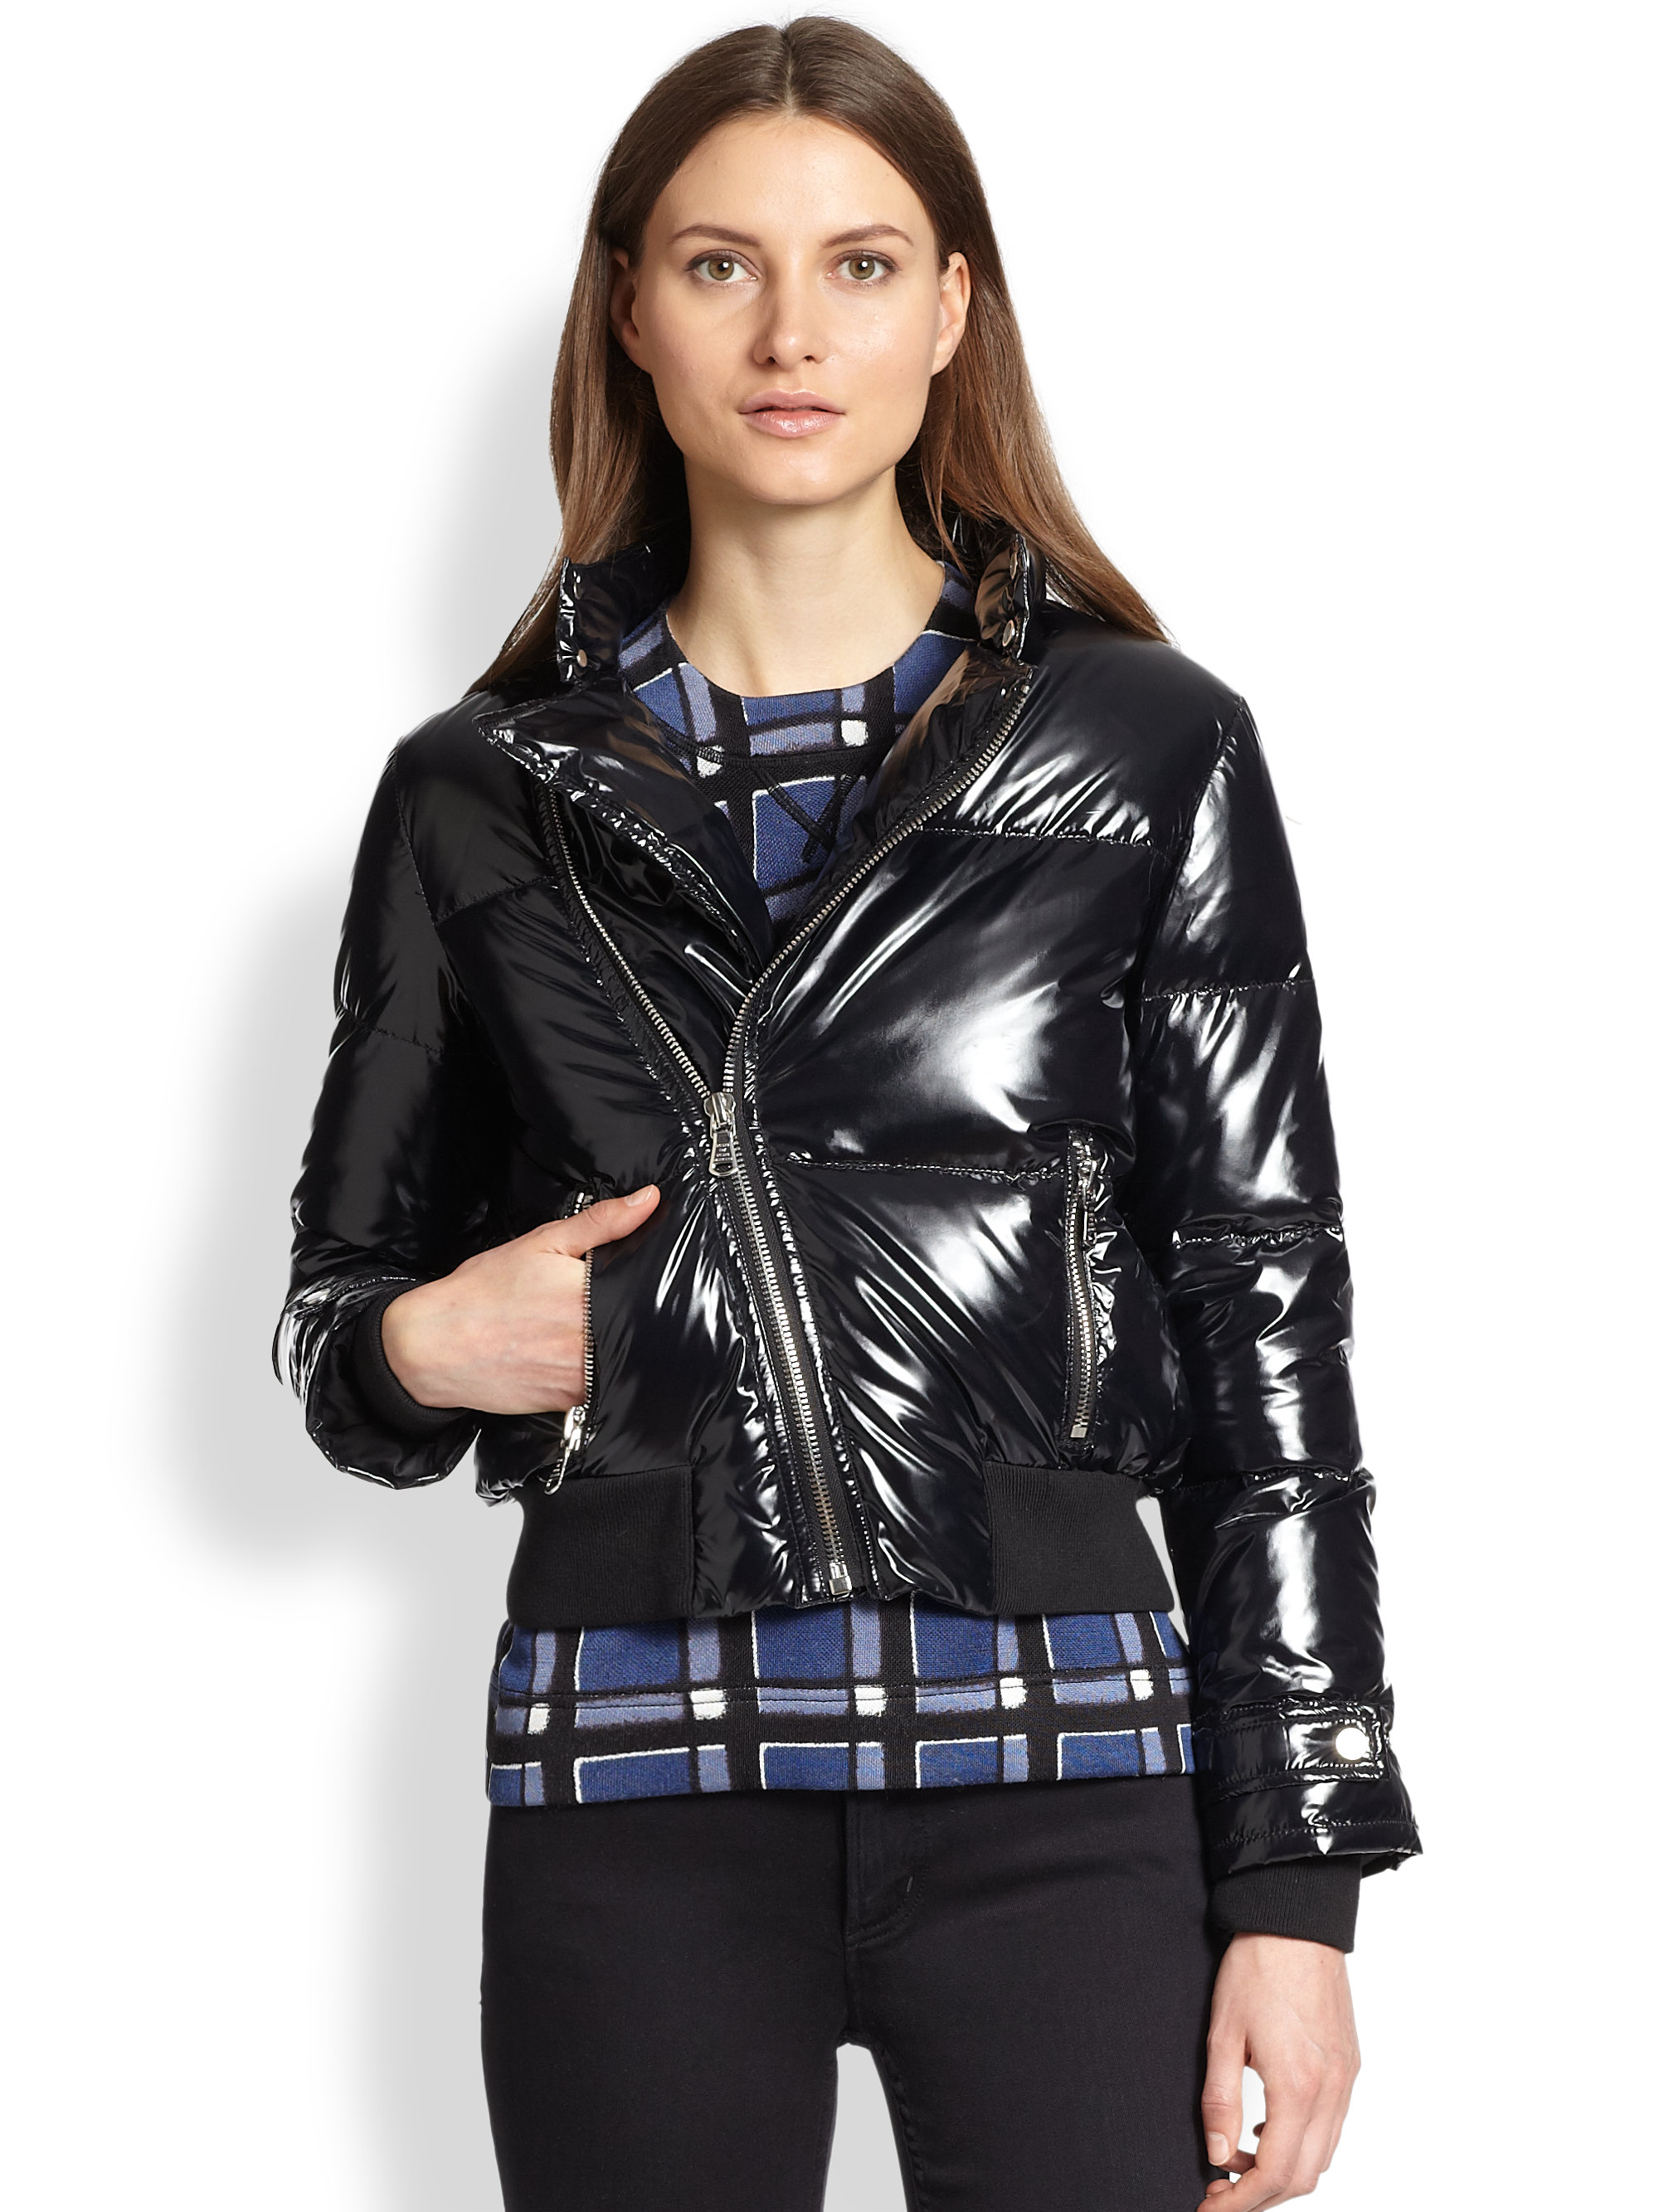 Burberry Brit Diamond Quilted Jacket Burberry Diamond